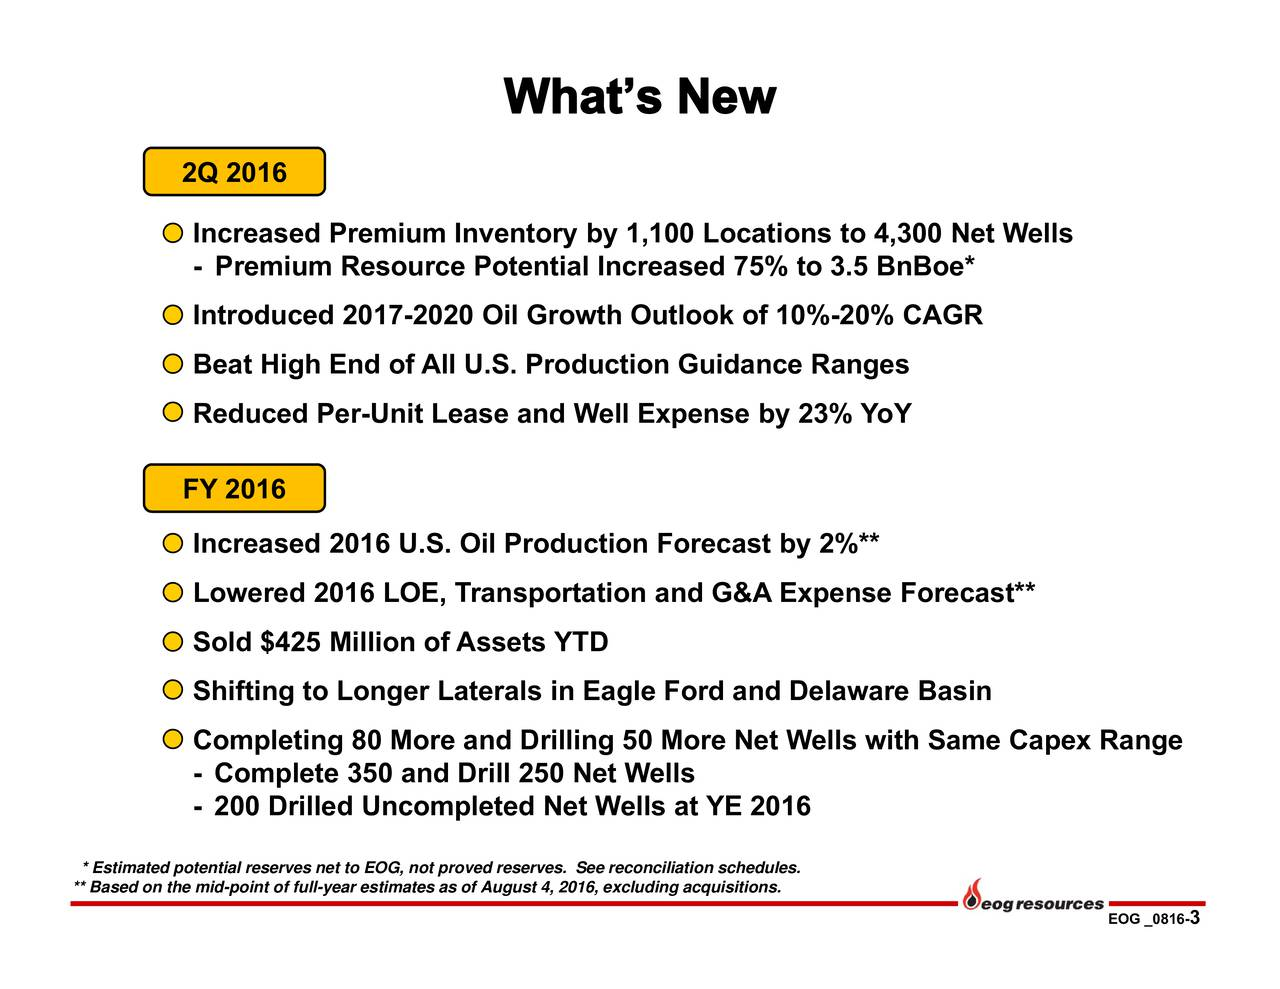 EOG _0816- Net Wells with Same Capex Range as of August 4, 2016, excluding acquisitions. 2Q 2016-PrnmruduatiiuuFY 2016eoswer2012fio- -om00Dteied0ancdDmilltedN * ** Based on the mid-point of full-year estimatesved reserves. See reconciliation schedules.